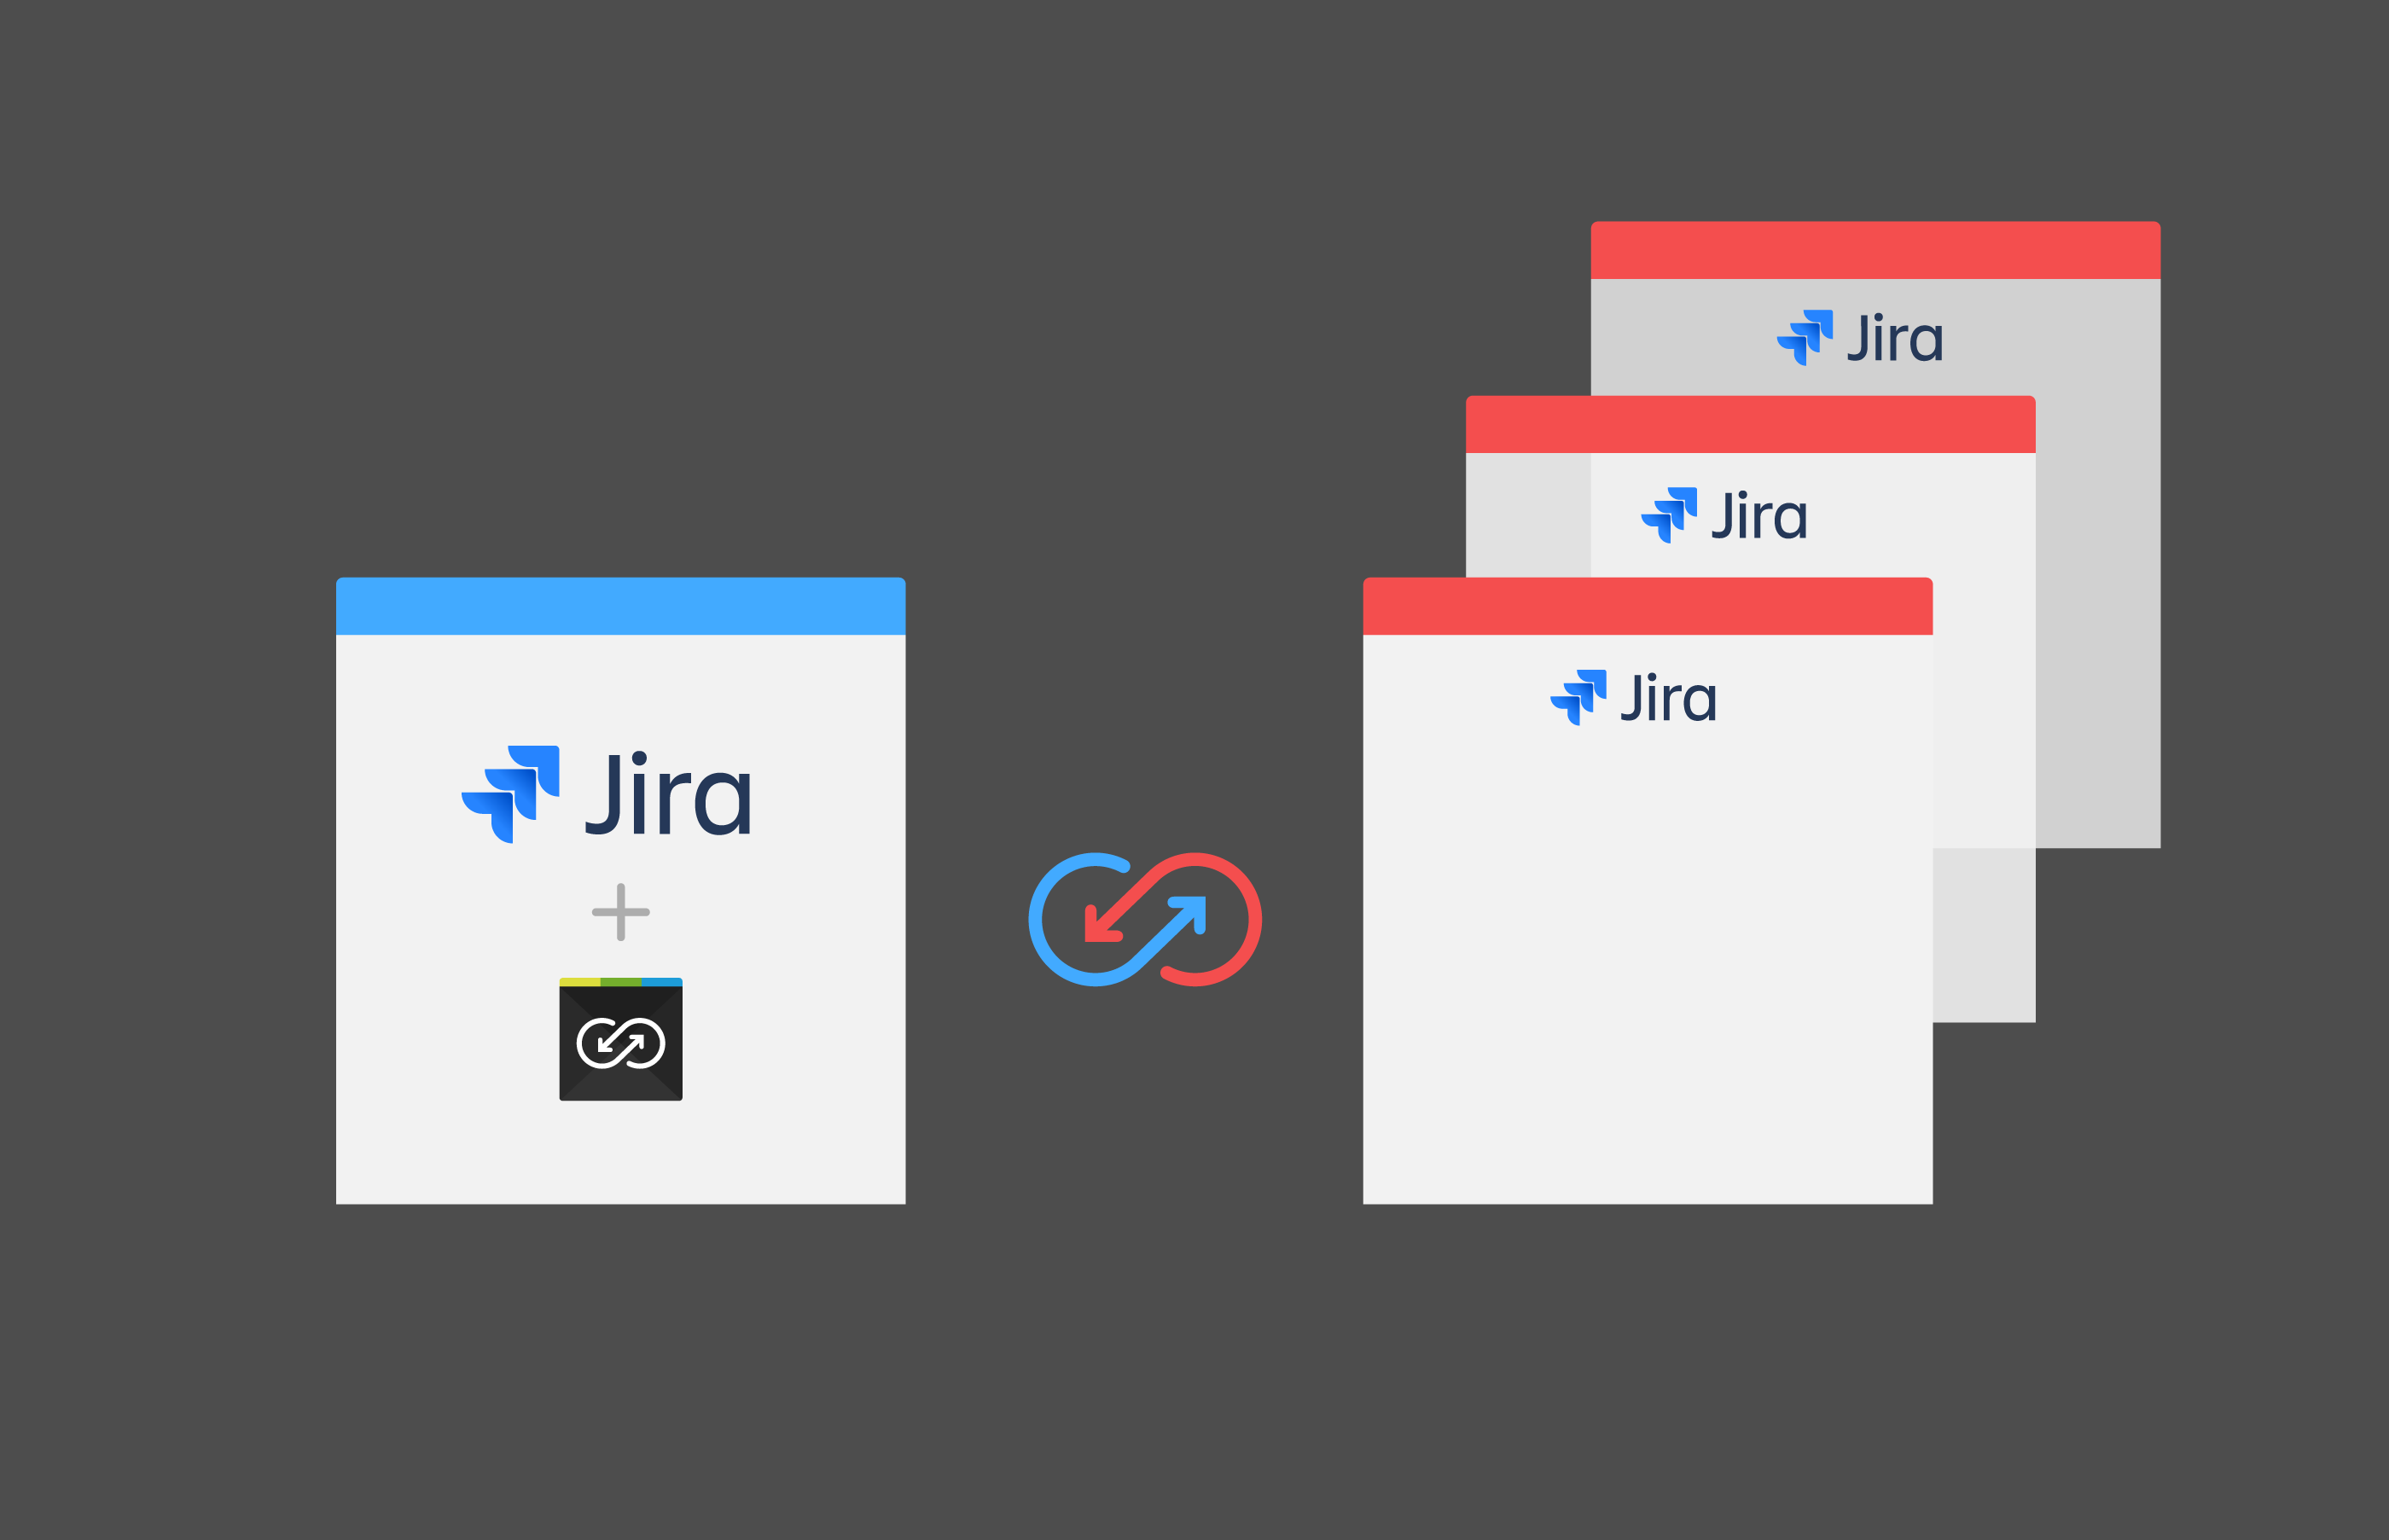 Sync Jira issues to migrate projects